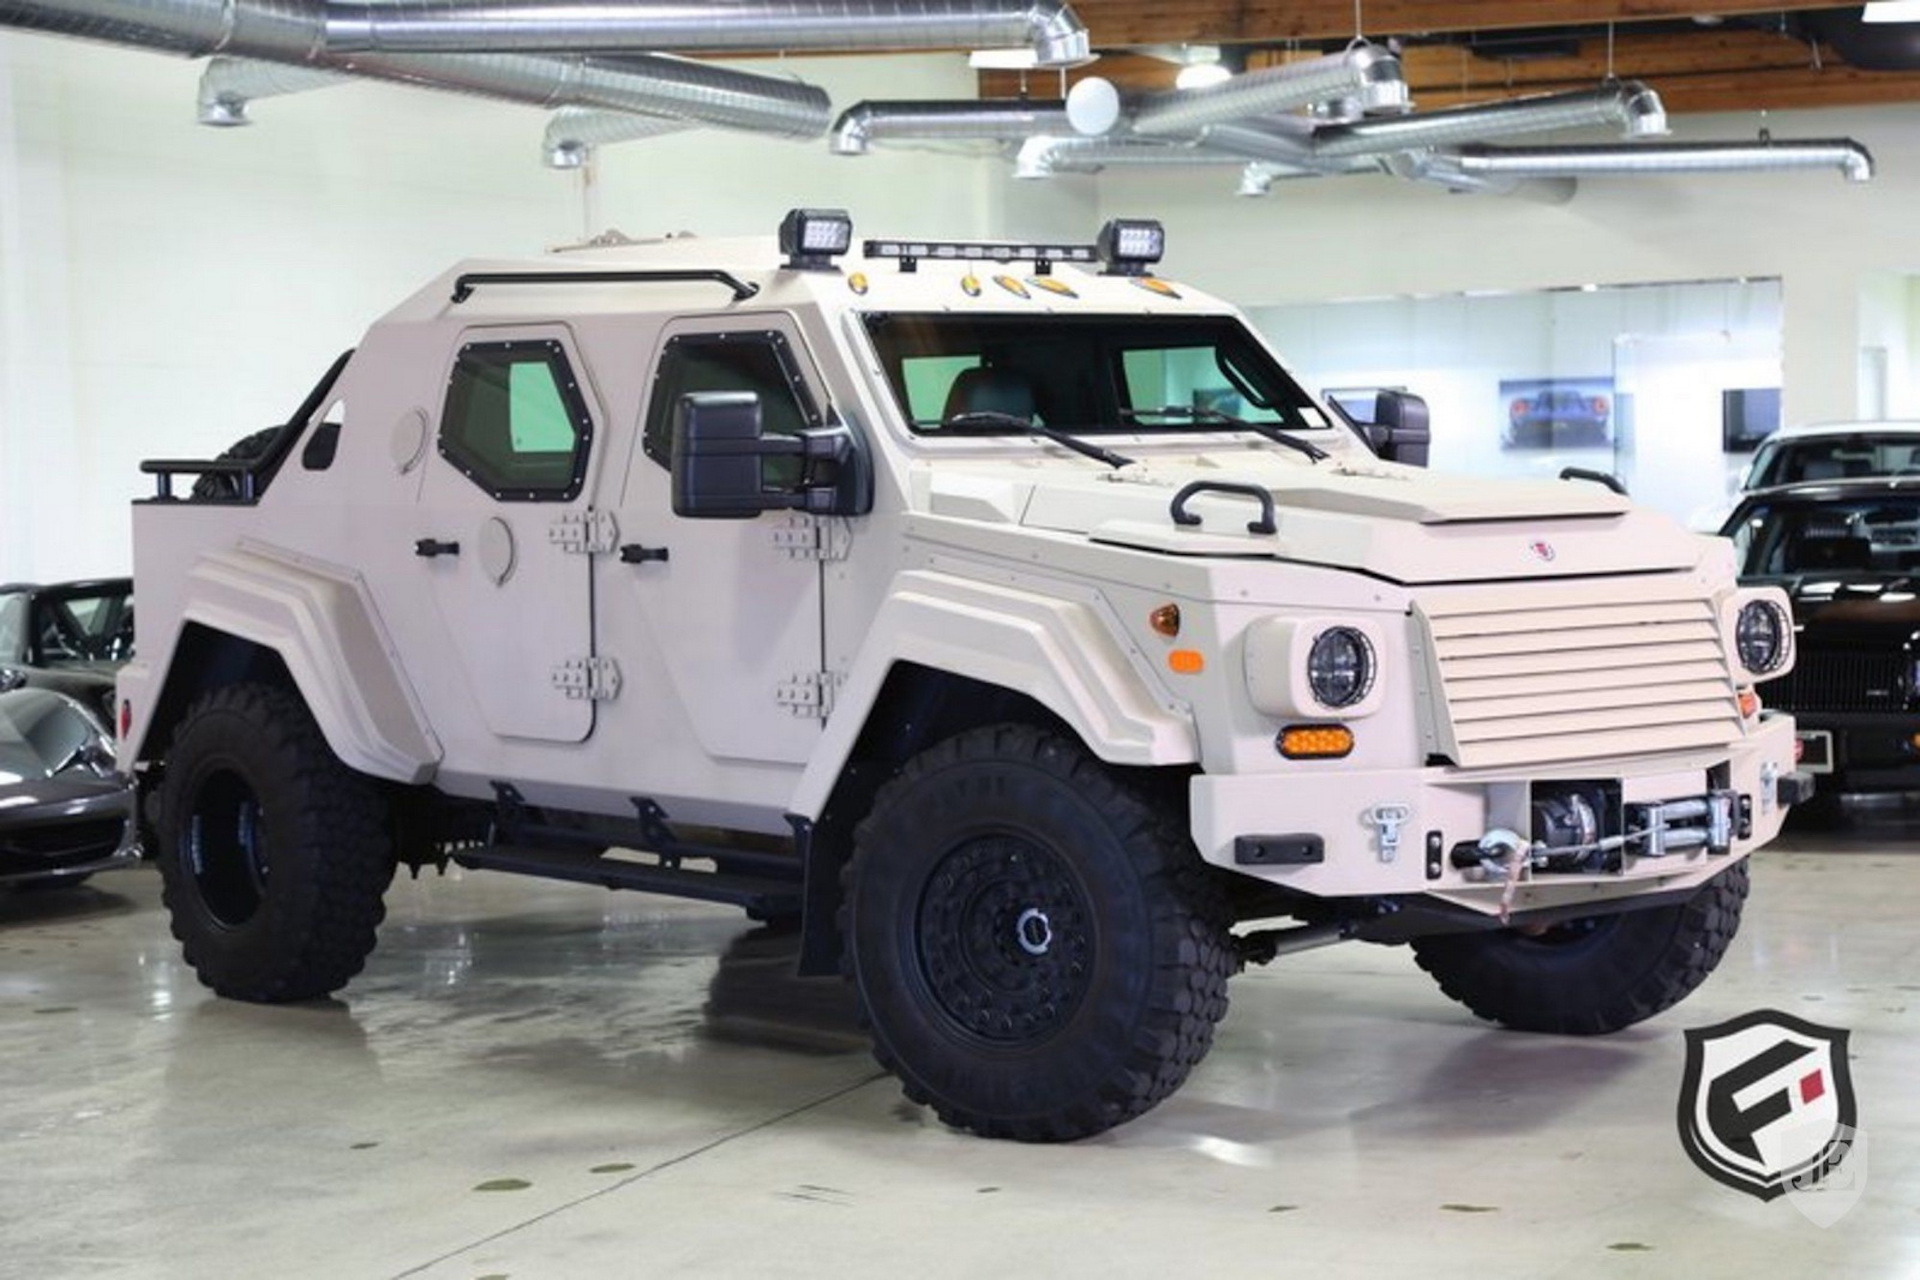 Terradyne Gurkha Is A Wild Armored Suv And It S For Sale